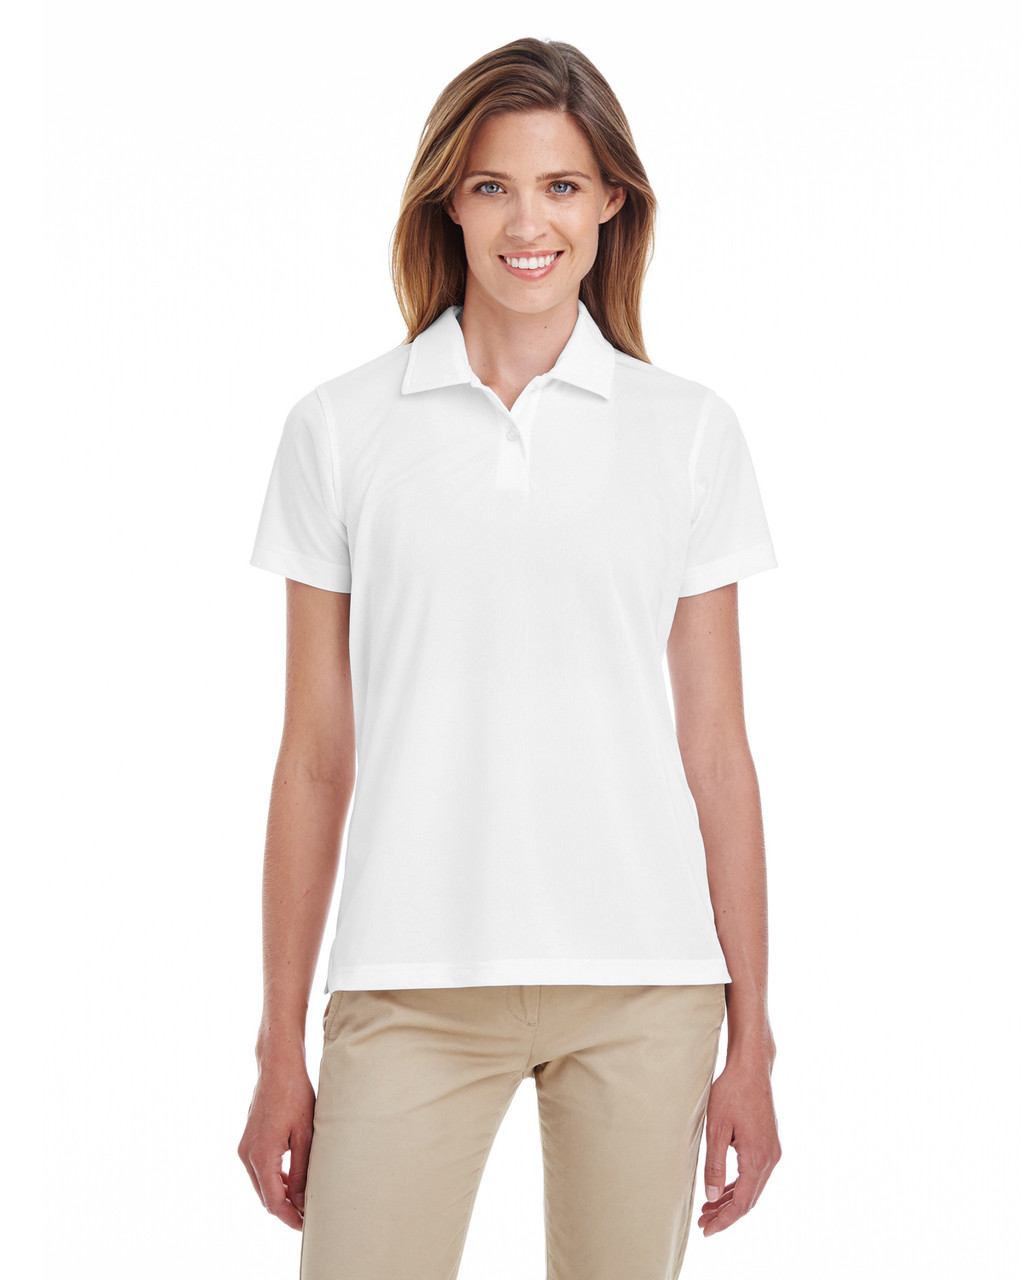 White - TT21W Team 365 Ladies' Command Snag Protection Polo Shirt